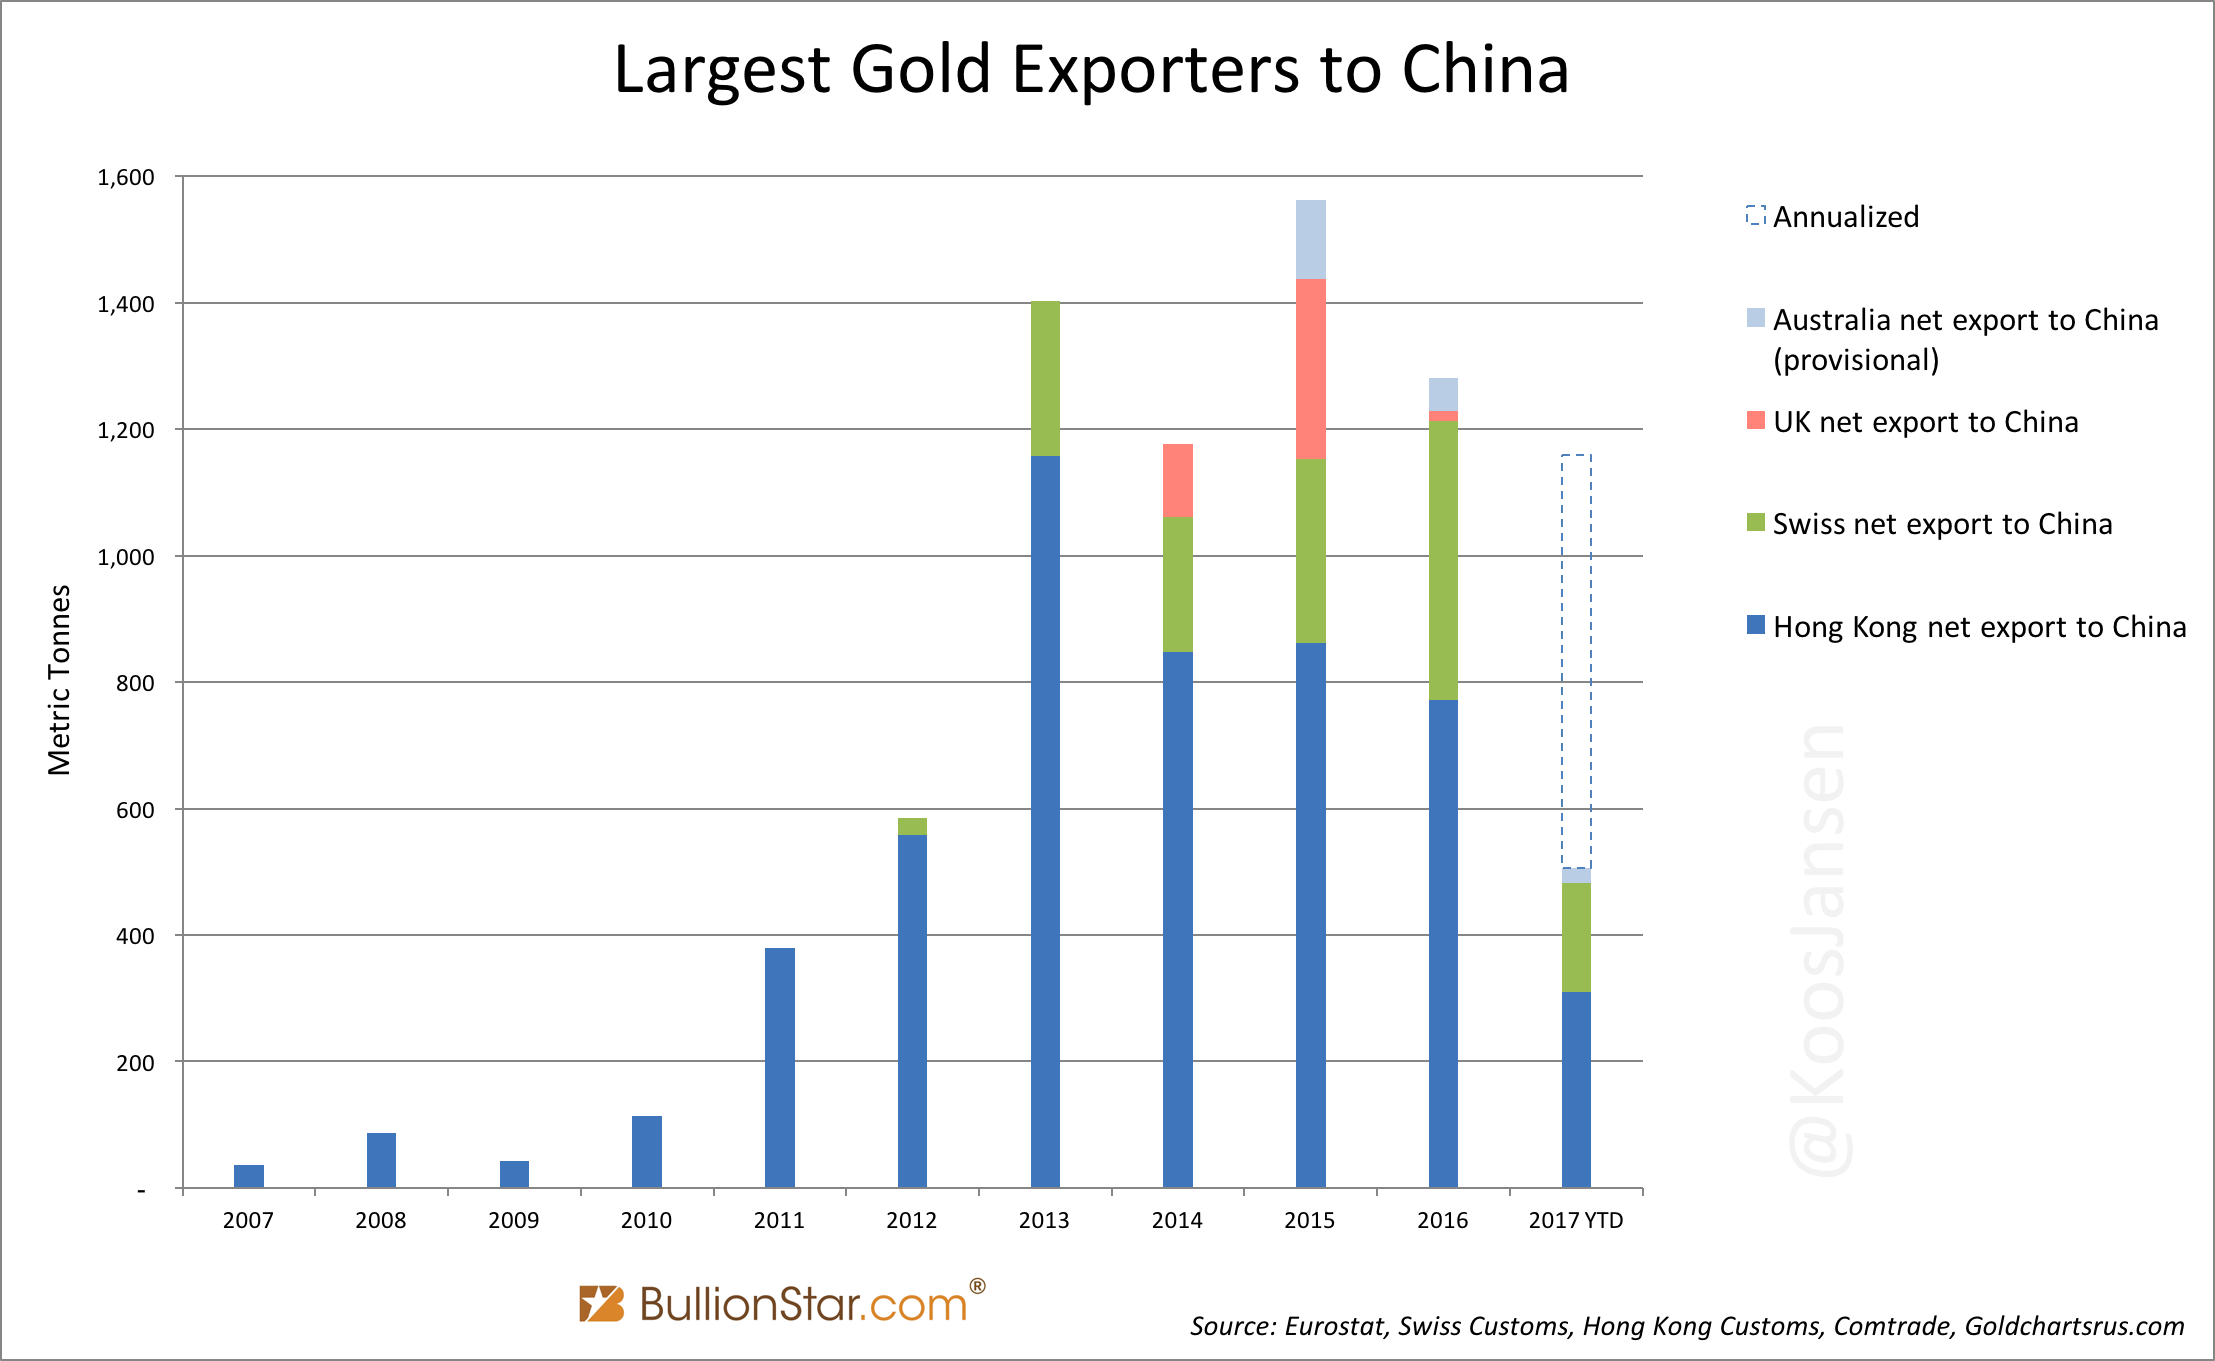 Chinese Gold Export for 2017